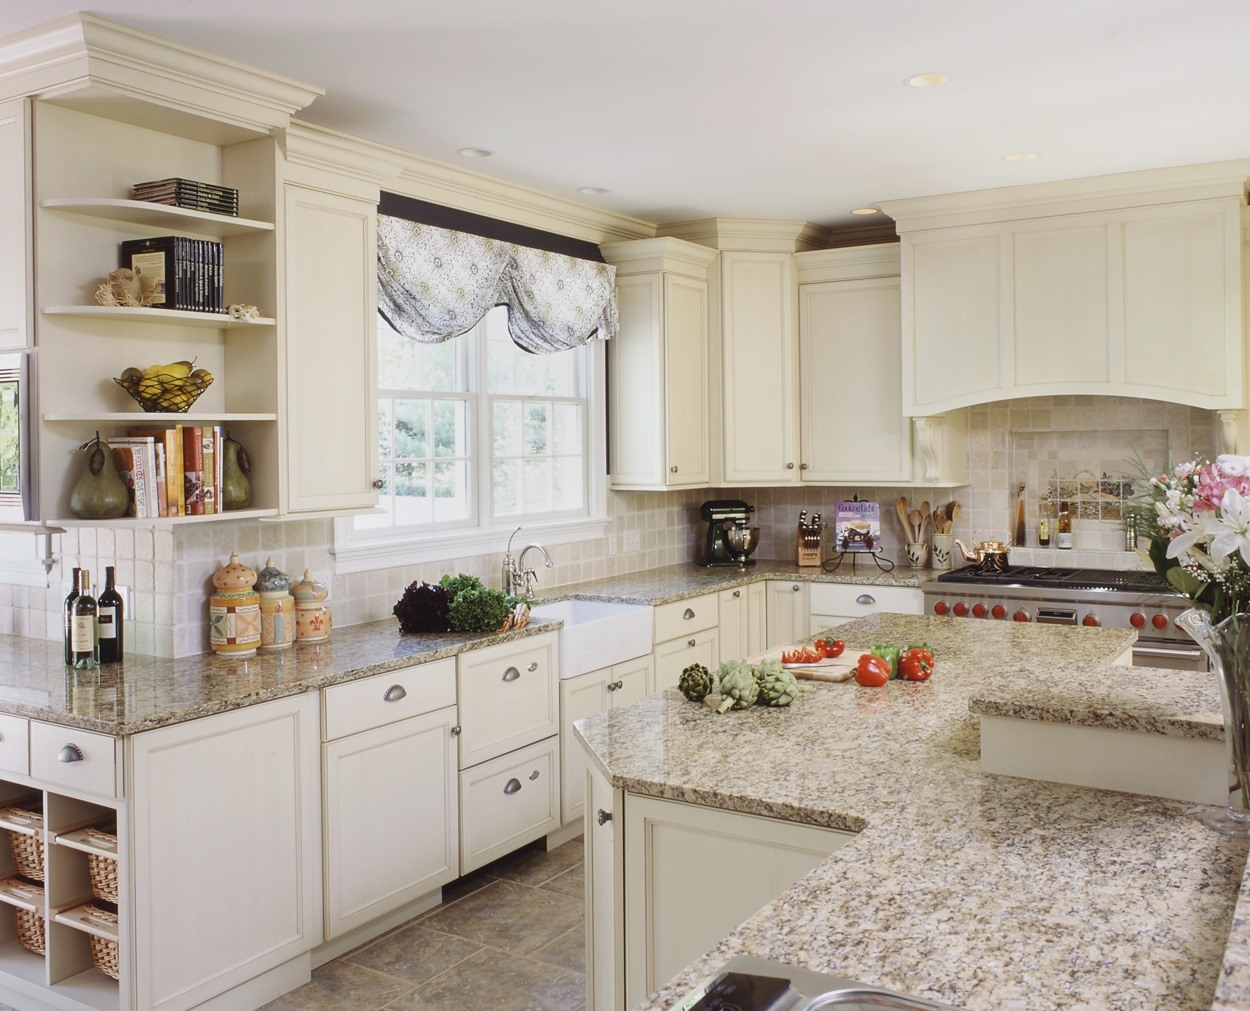 Creamy cabinets with a bi-level island and wrap around perimeter.